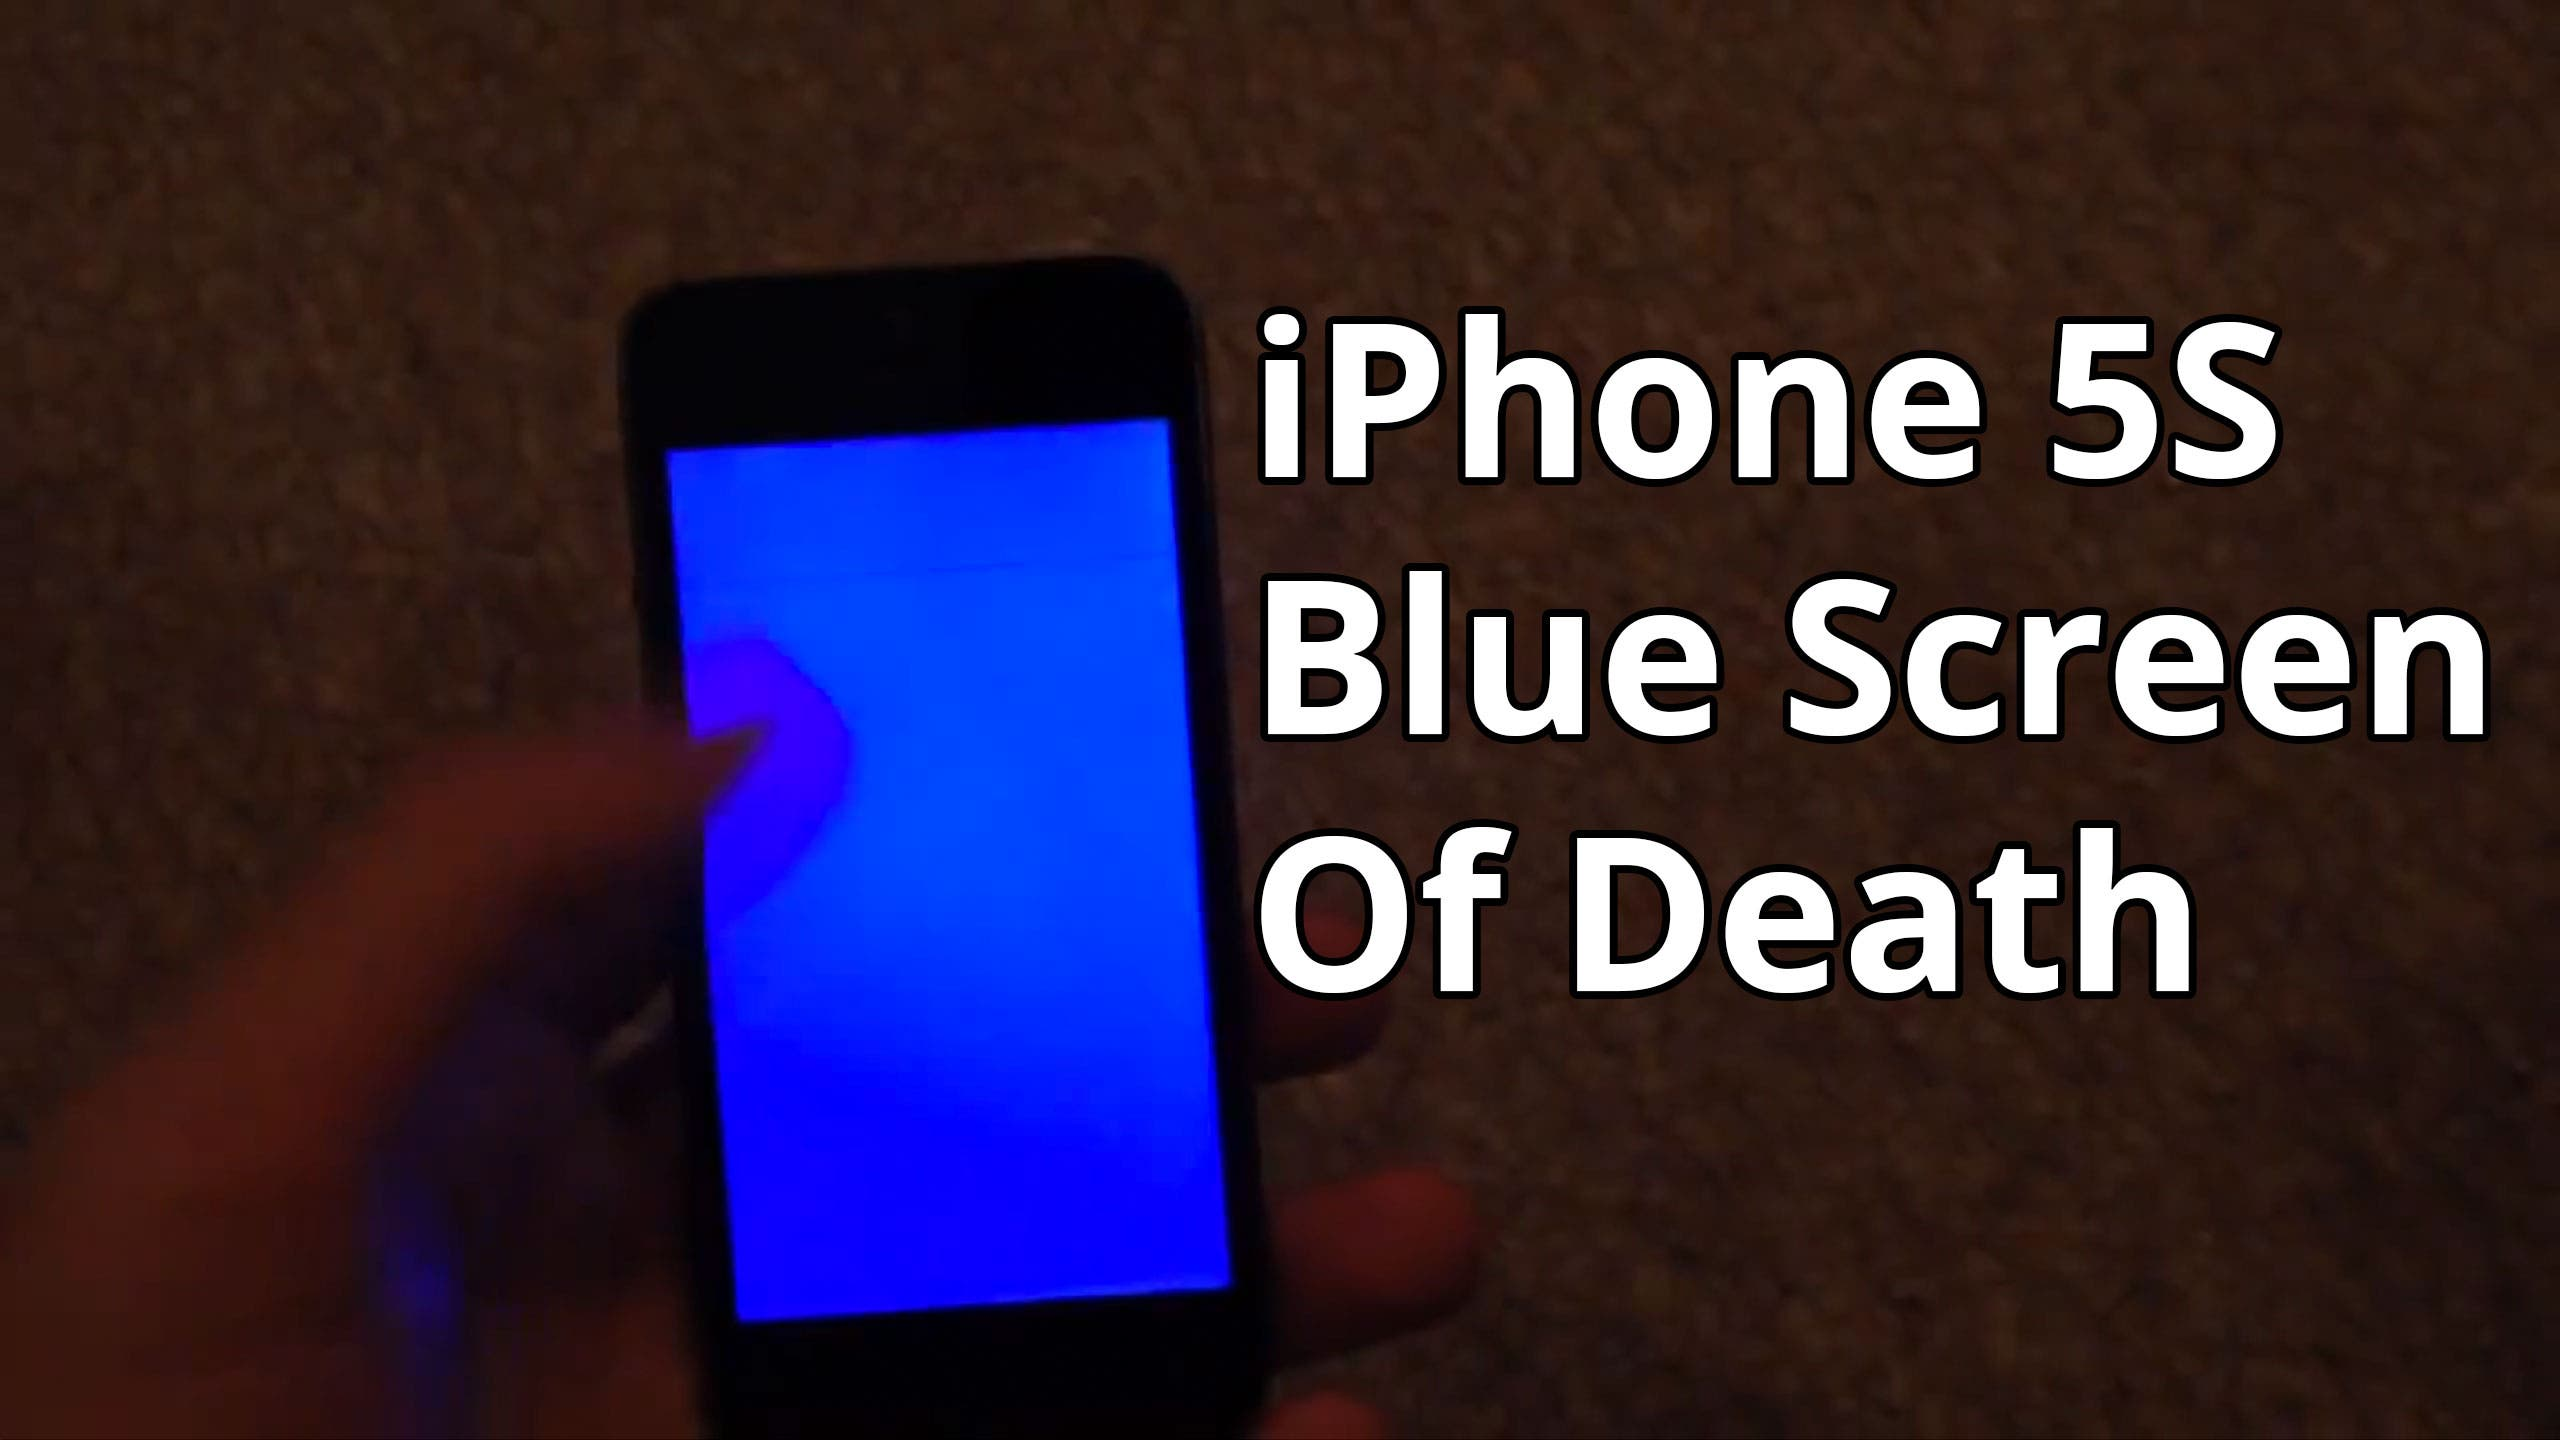 blue screen of death iphone 5s iphone 5s blue screen of mobilegeeks de 18319